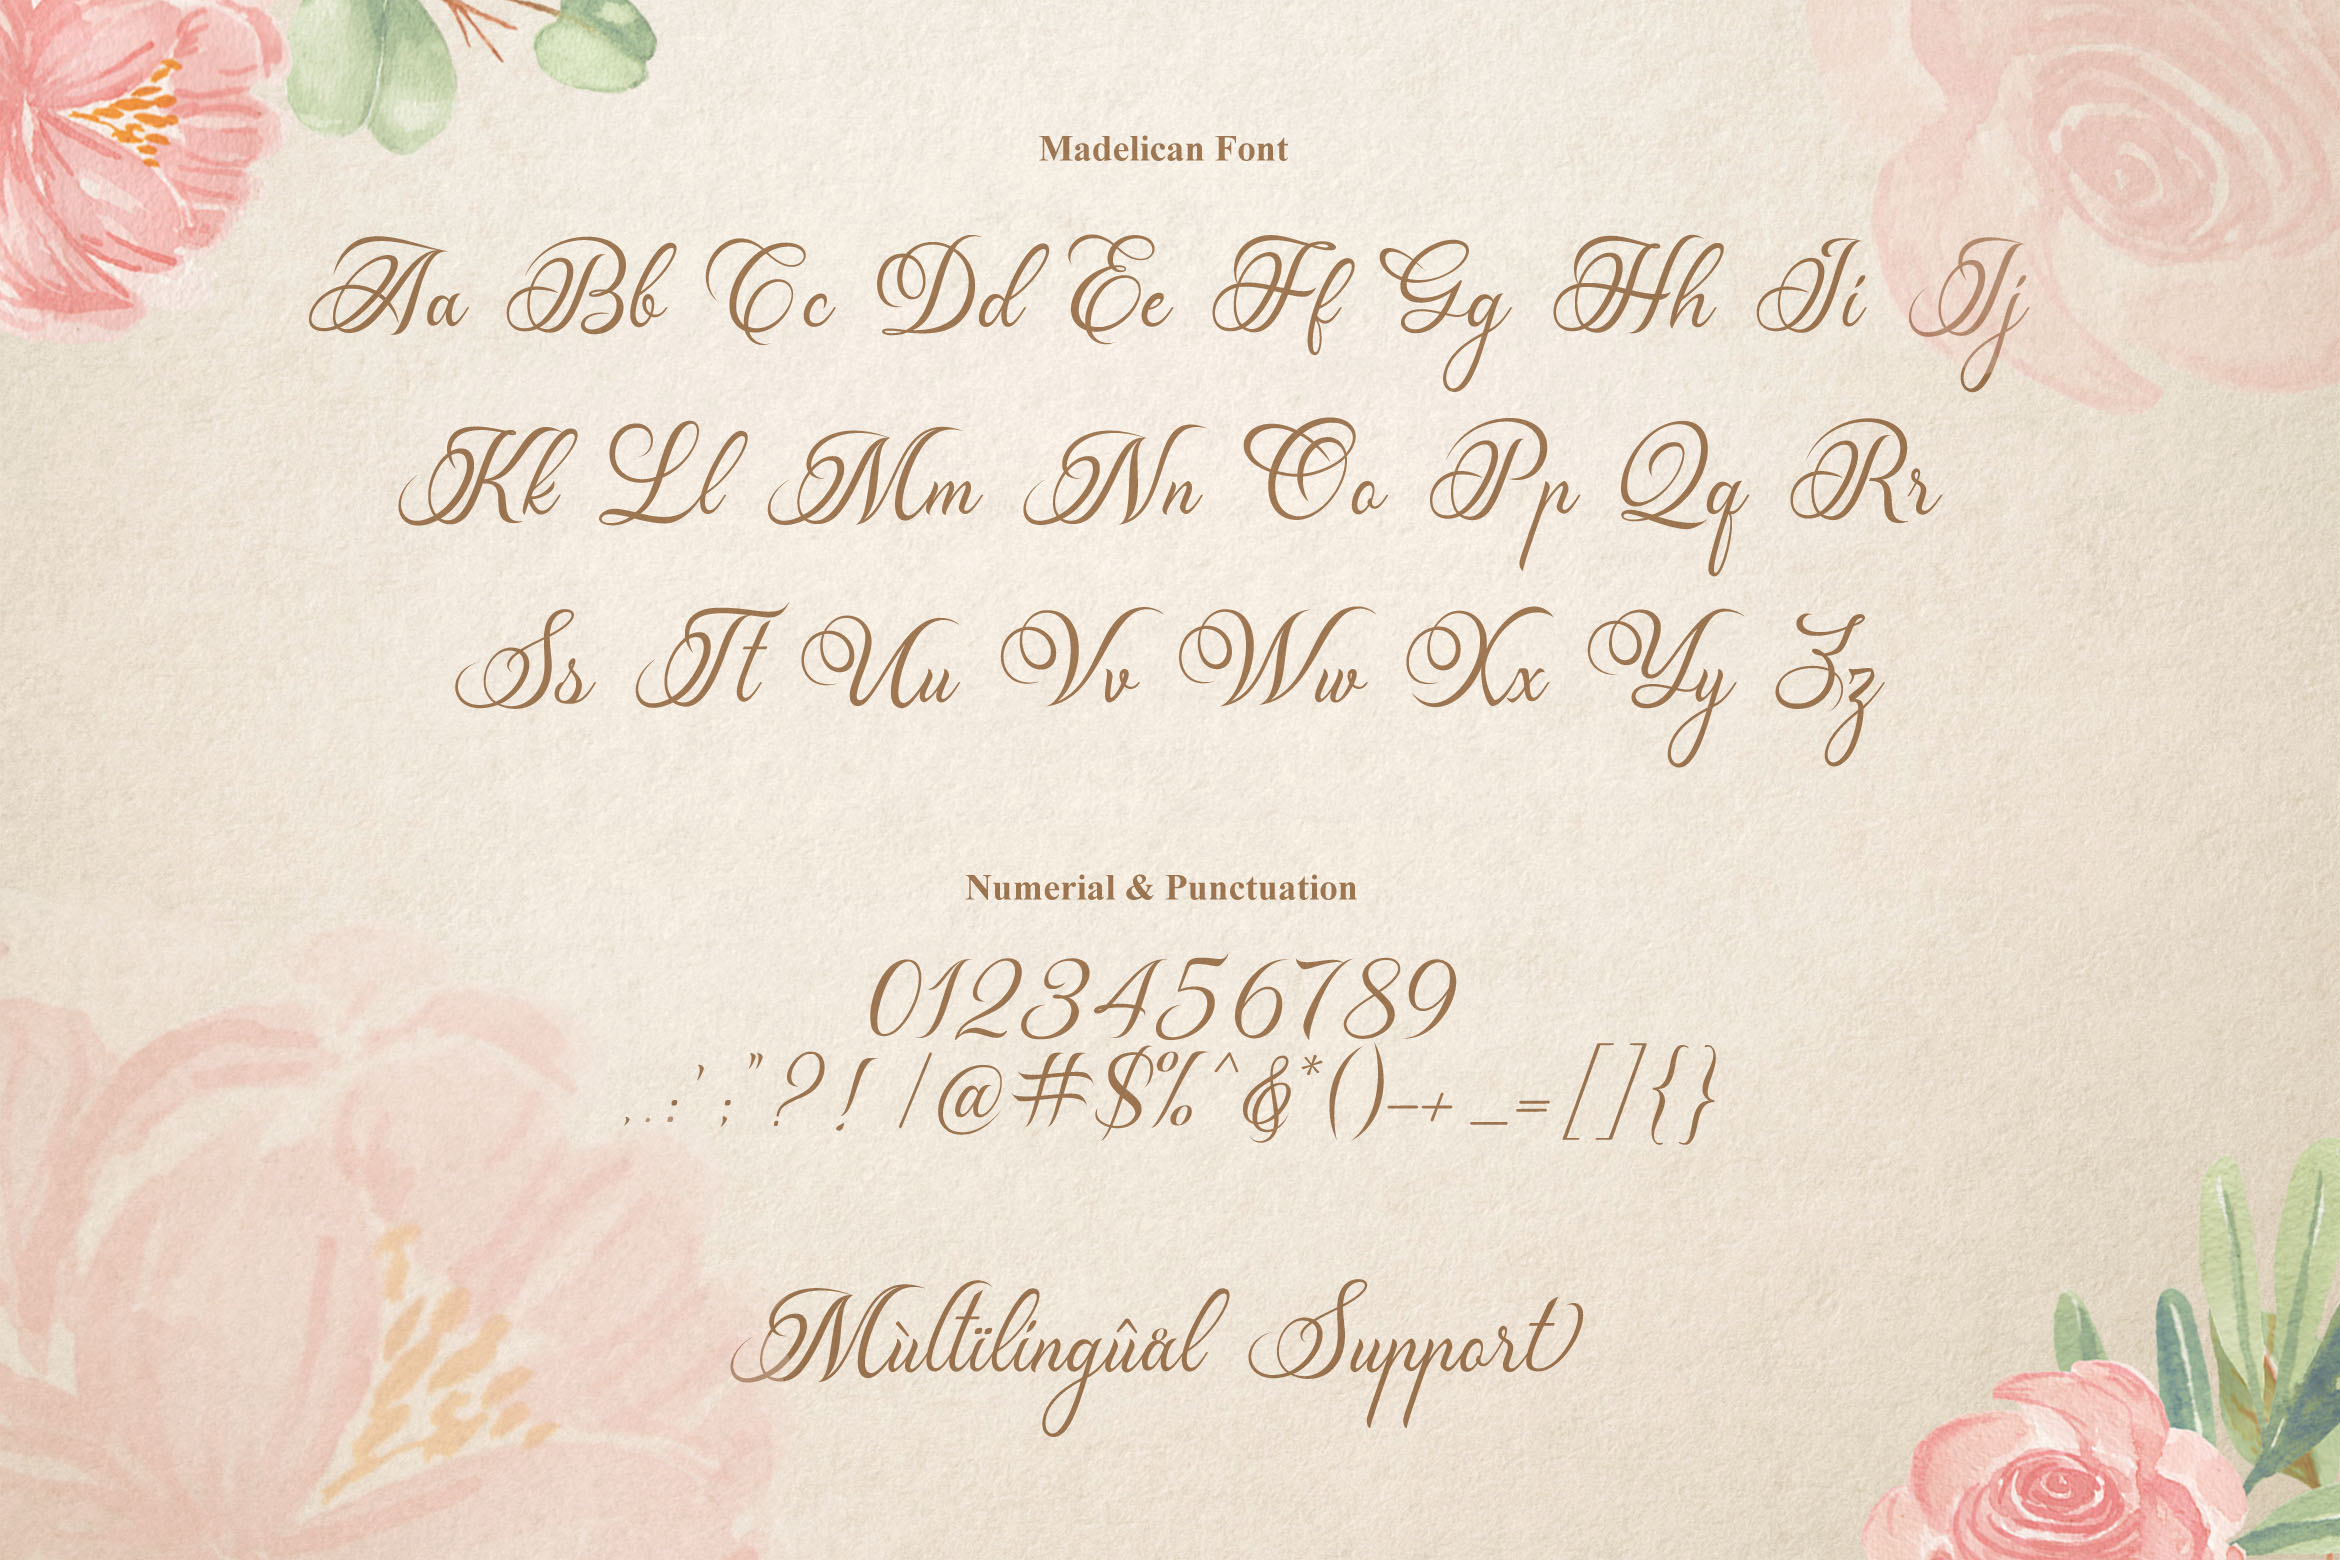 Madelican Calligraphy Font example image 3